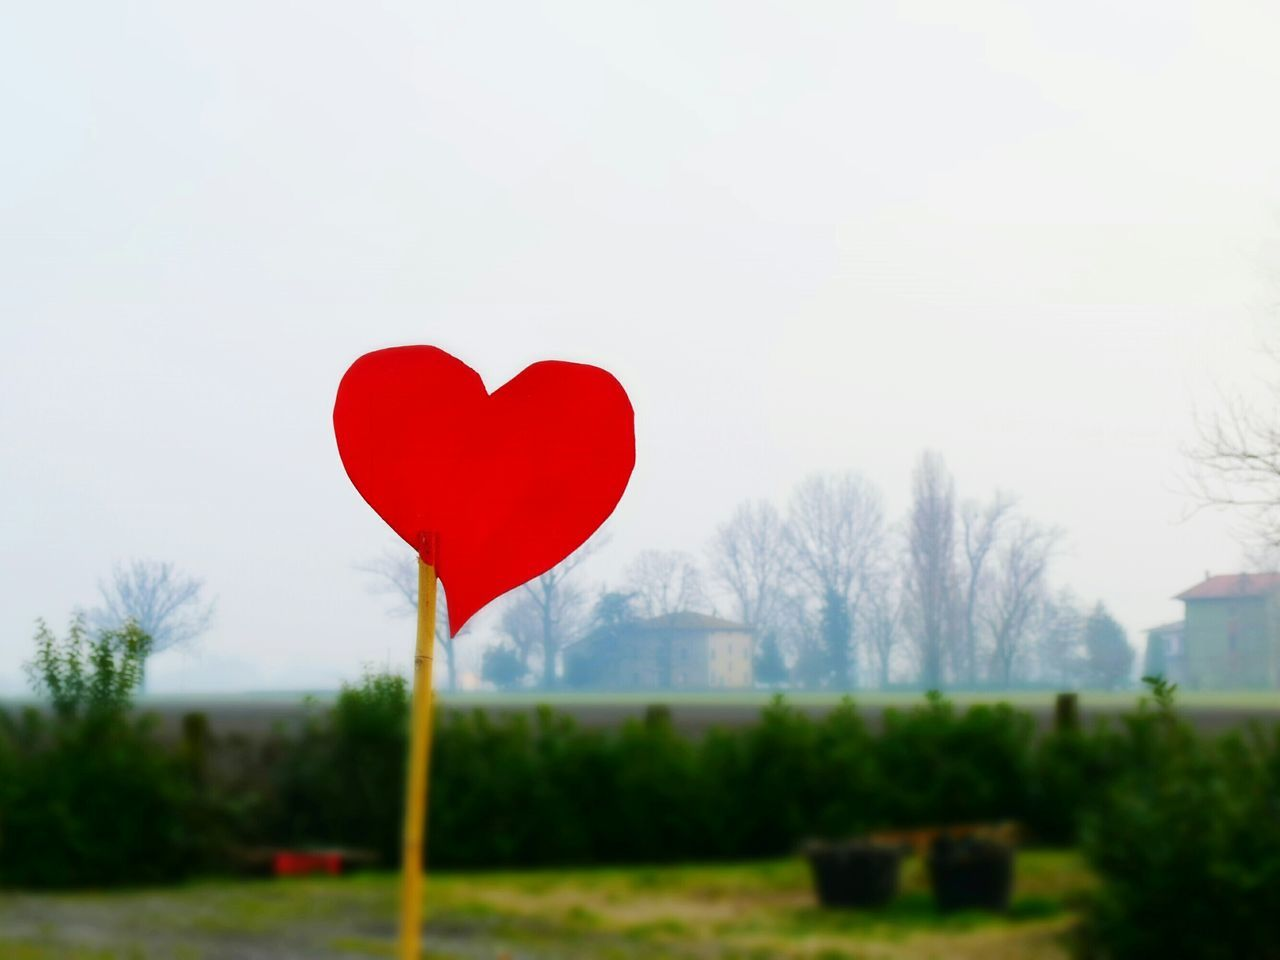 Red Heart Stuck On Stick At Park Against Clear Sky